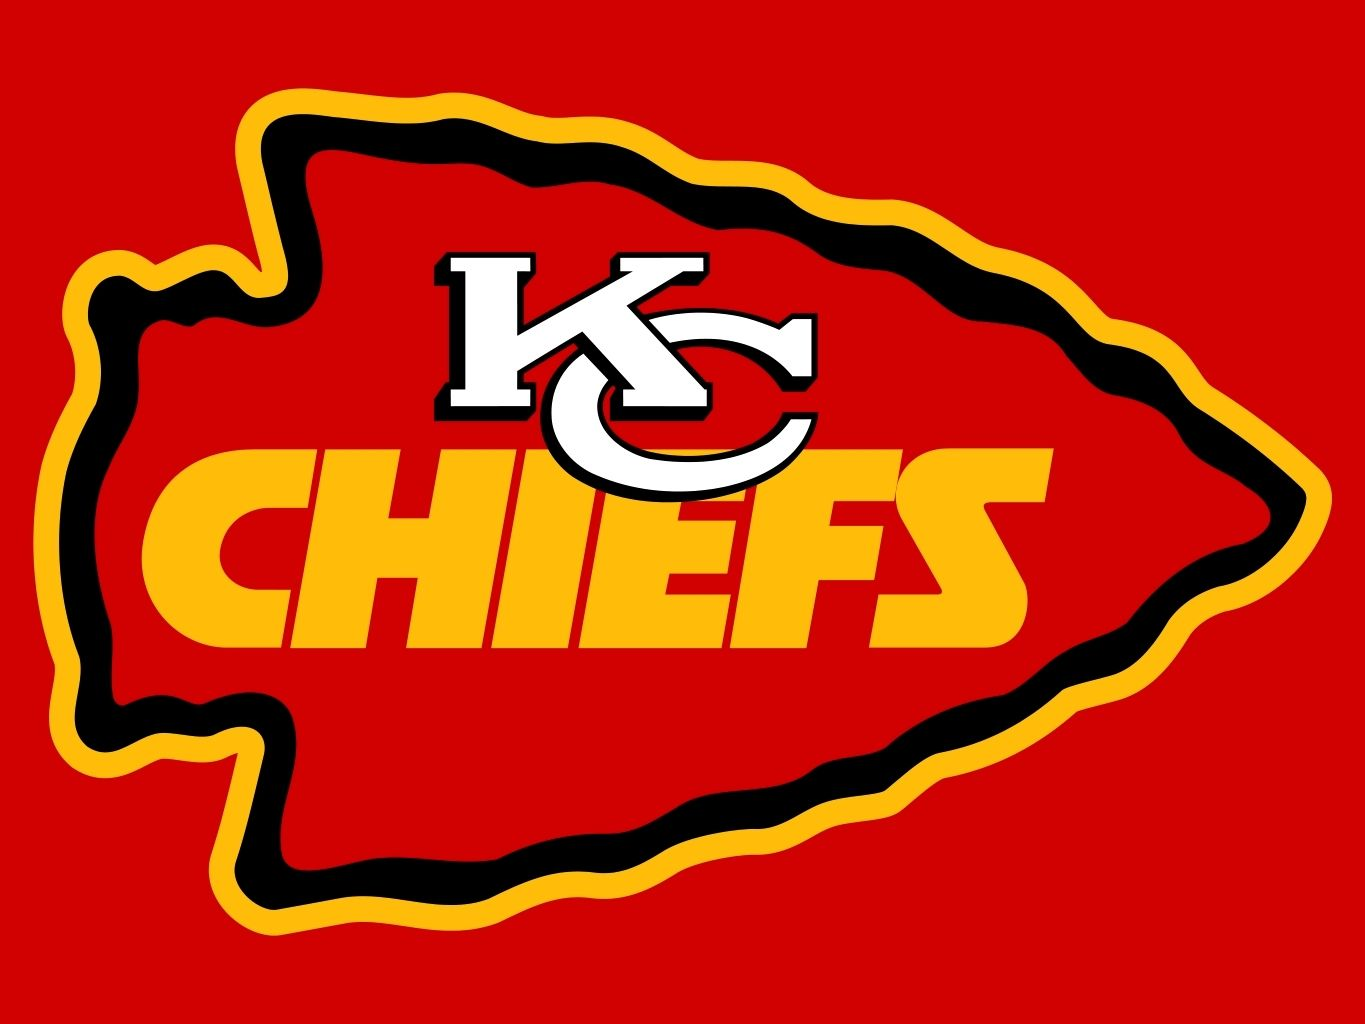 Kansas City Chiefs // Minnesota Vikings football game